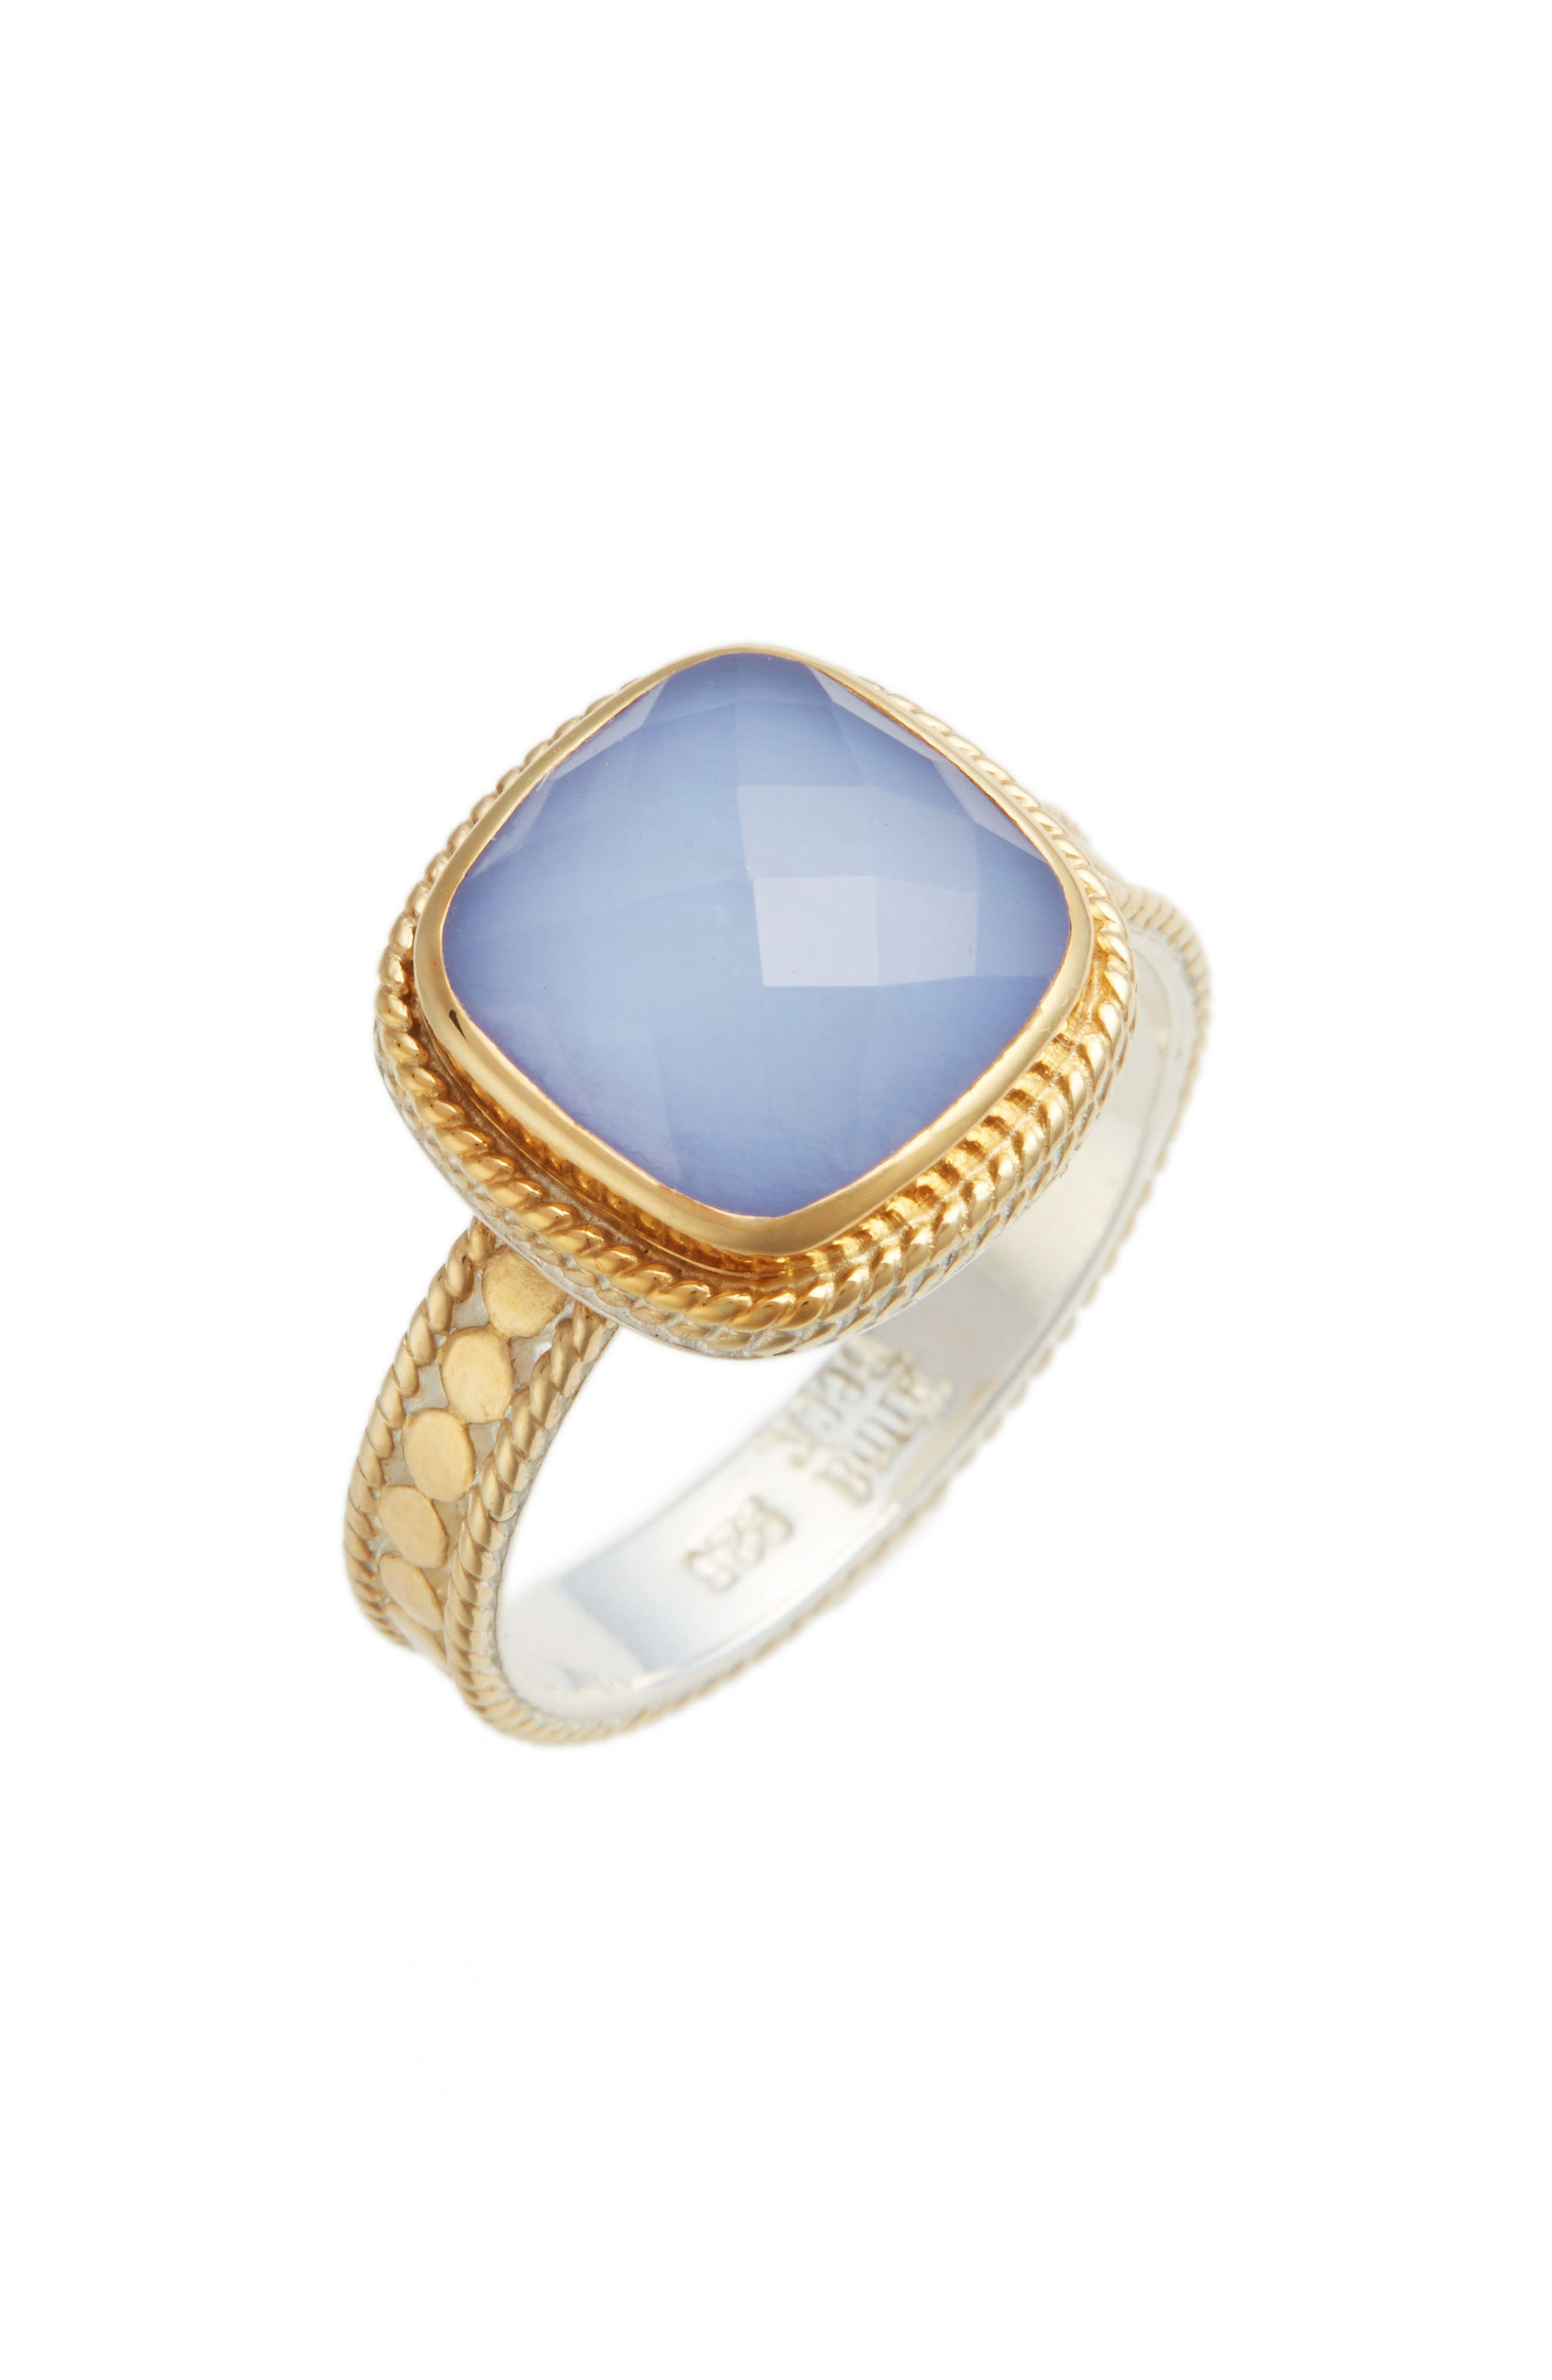 Blue Chalcedony Cushion Ring,                             Main thumbnail 1, color,                             Gold/ Blue Chalcedony